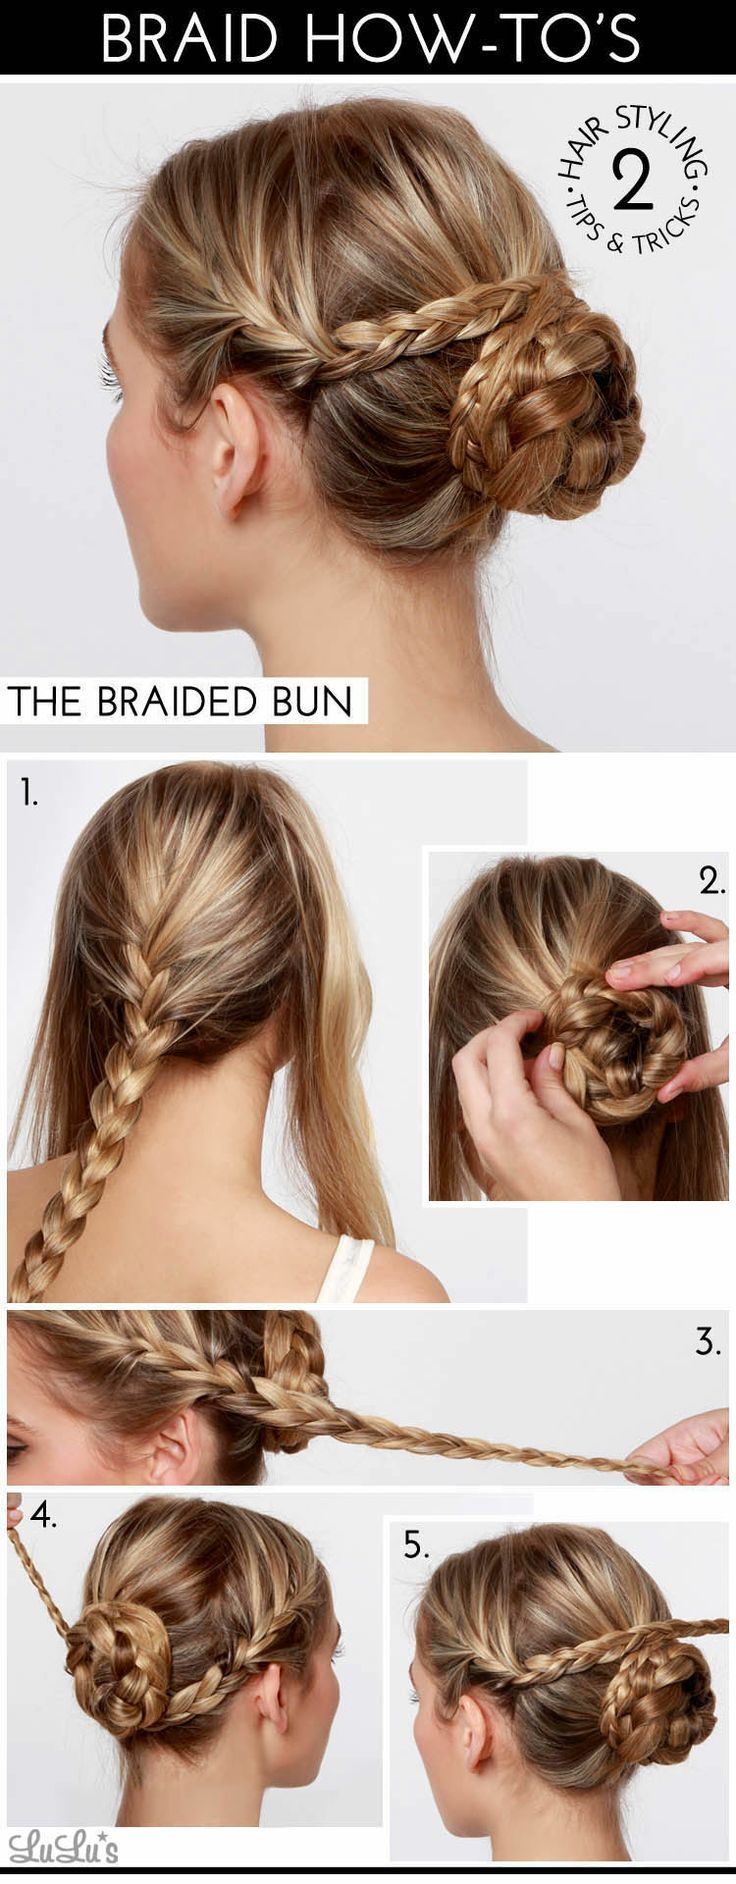 Tremendous 1000 Images About Pretty Diy Hair Idea On Pinterest Updo Easy Short Hairstyles Gunalazisus